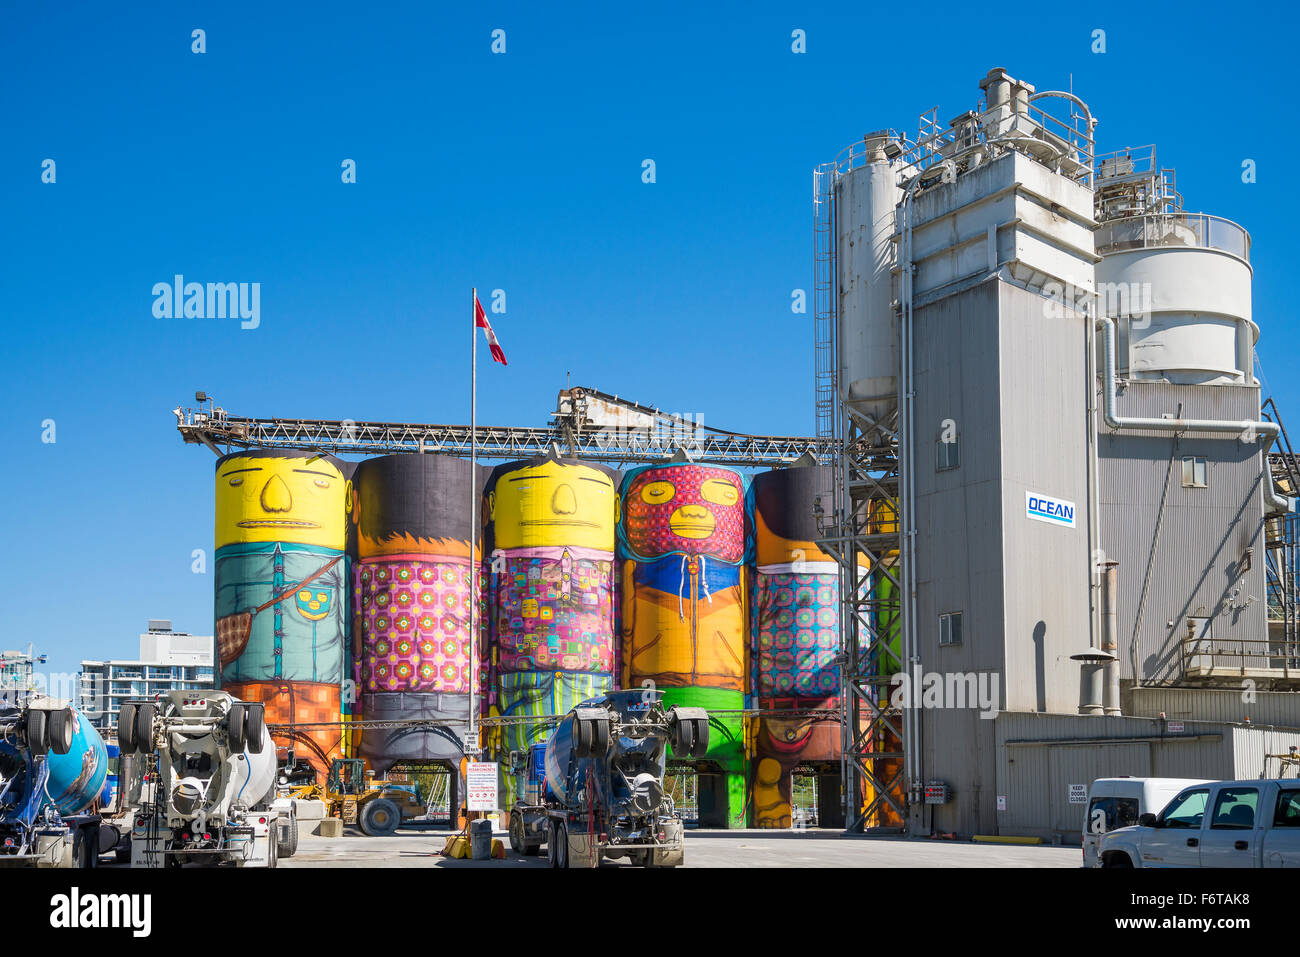 Public Art Mural called Giants on Granville Island's Ocean Cement buildings, Vancouver, British Columbia, Canada - Stock Image